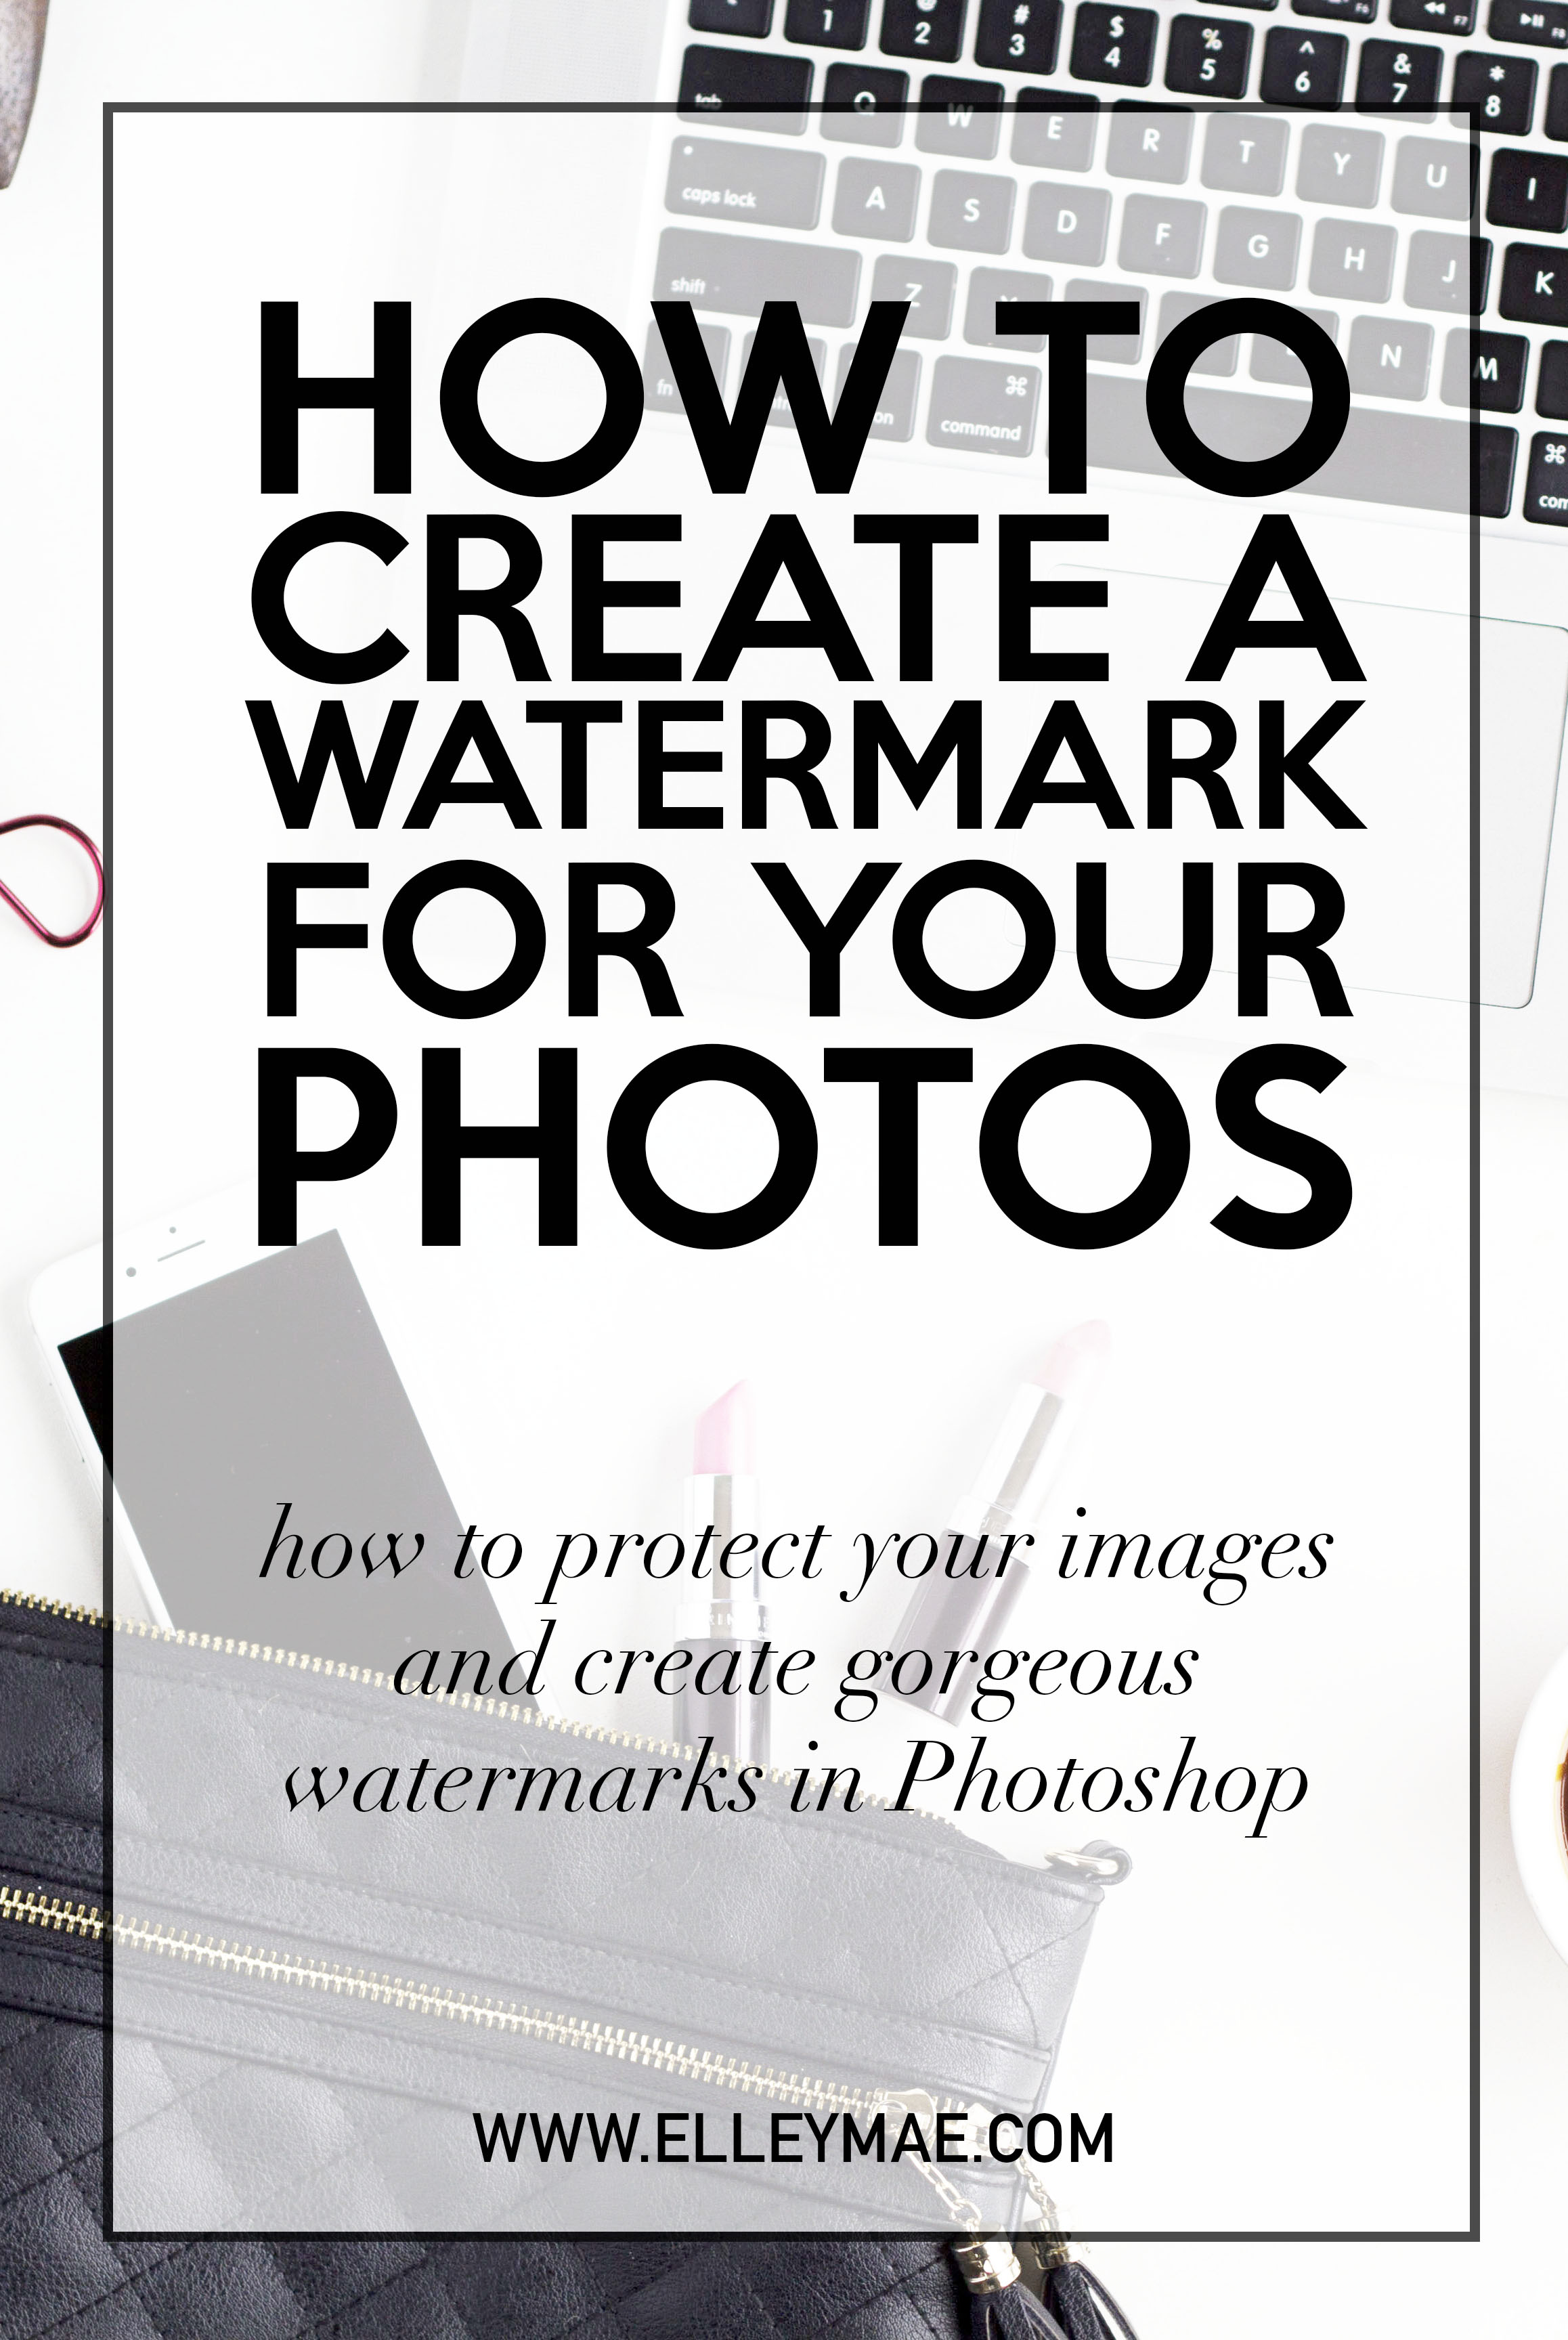 Photoshop 101: Creating a Watermark